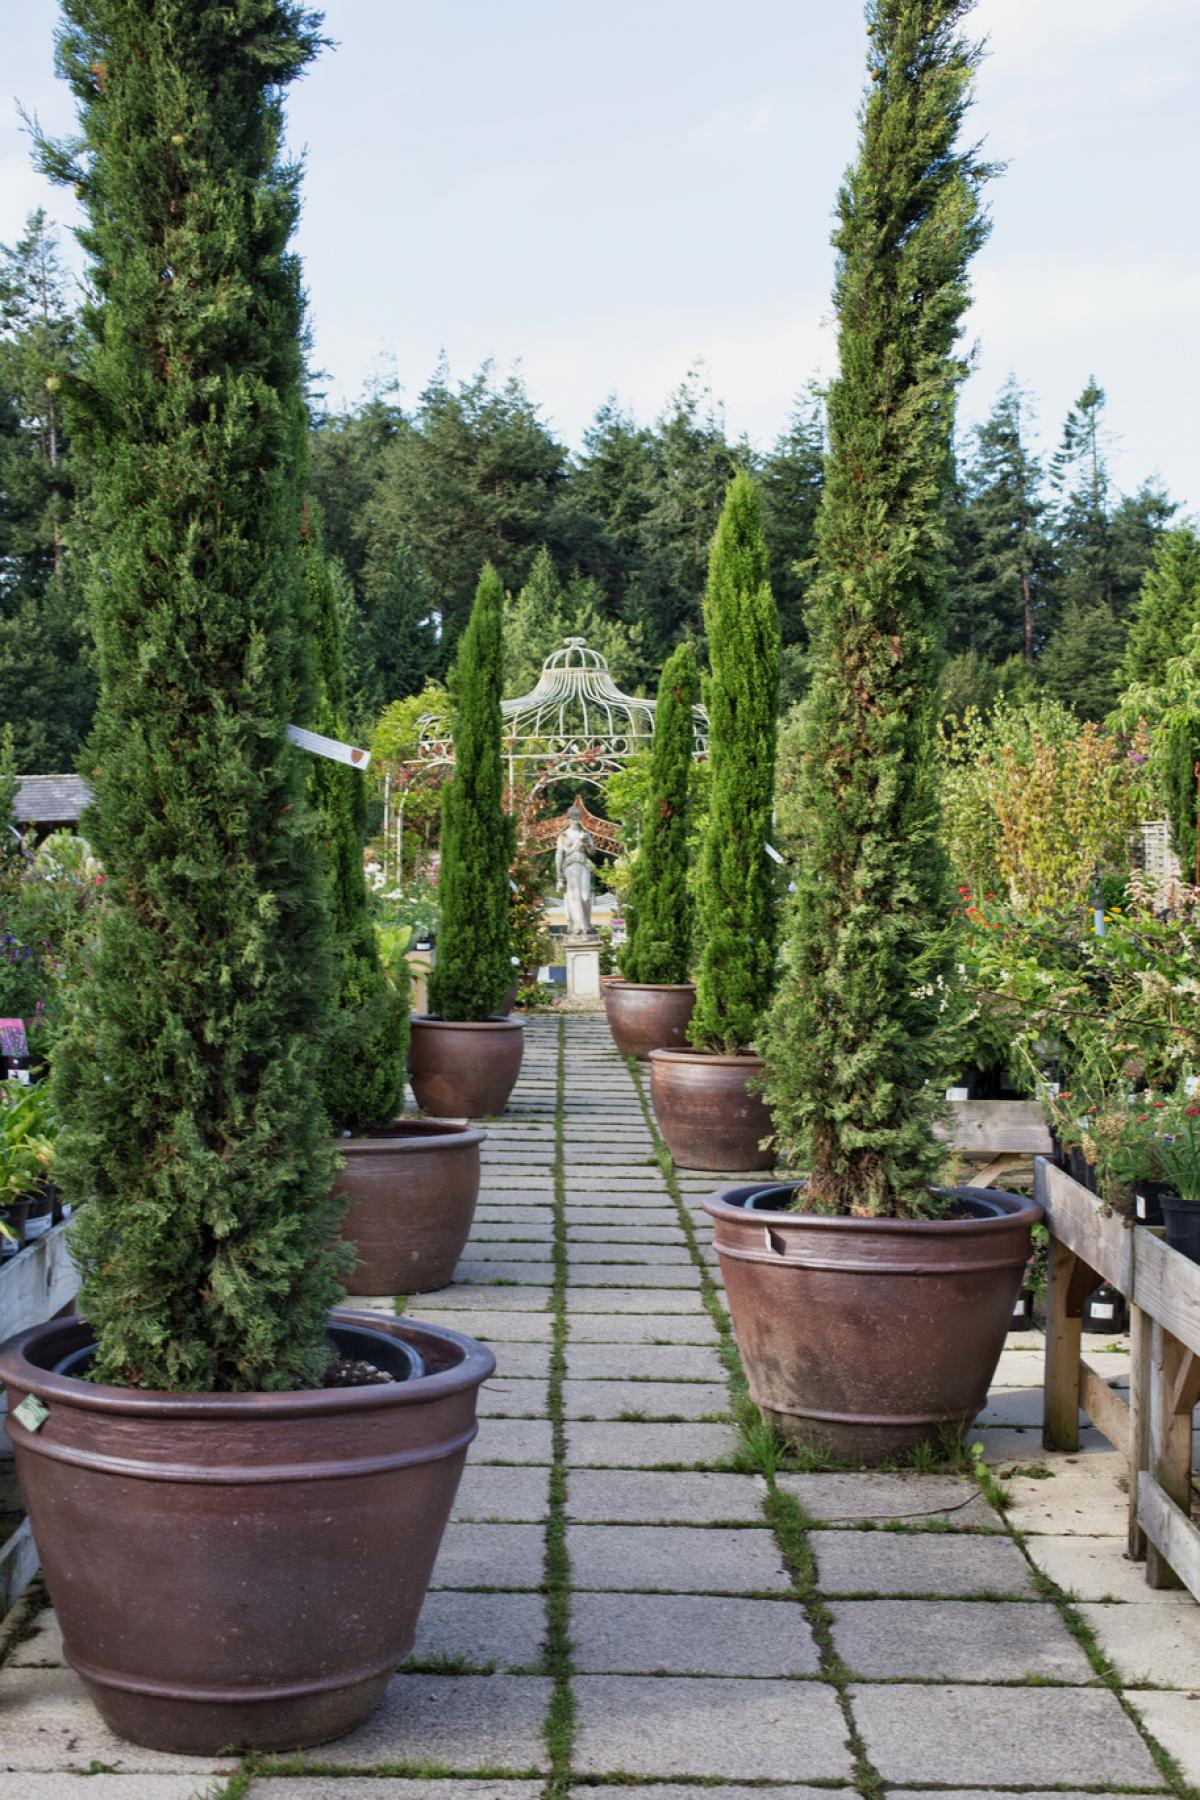 Images from Duchy of Cornwall Nursery